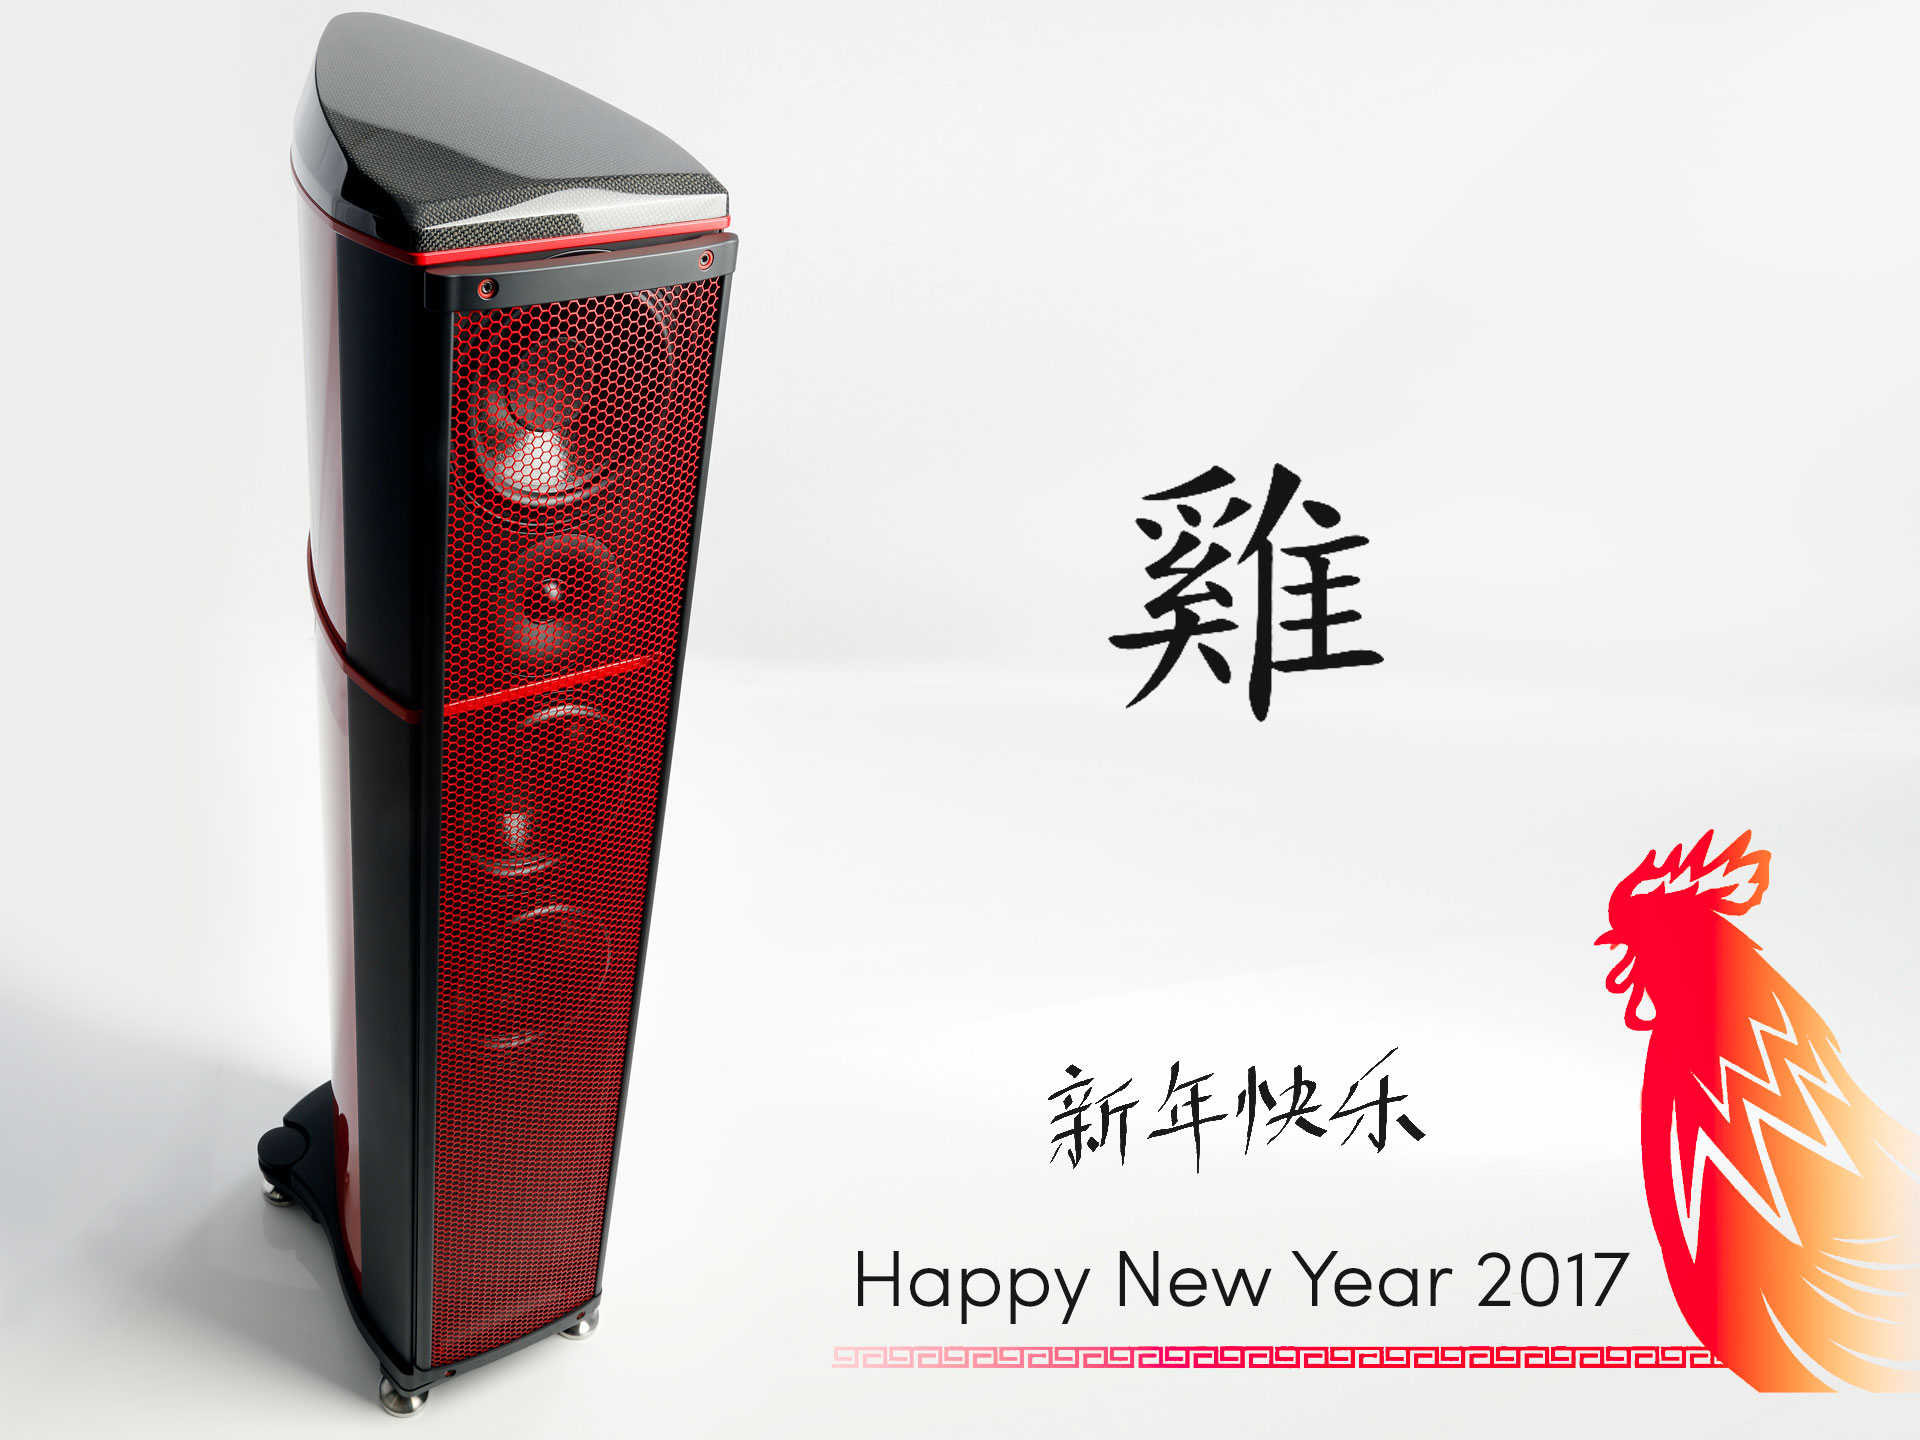 Wilson Benesch - A.C.T. One Evolution P1 - Enzo Red - Hypetex - Coloured Carbon Fibre - Lunar New Year - Rooster